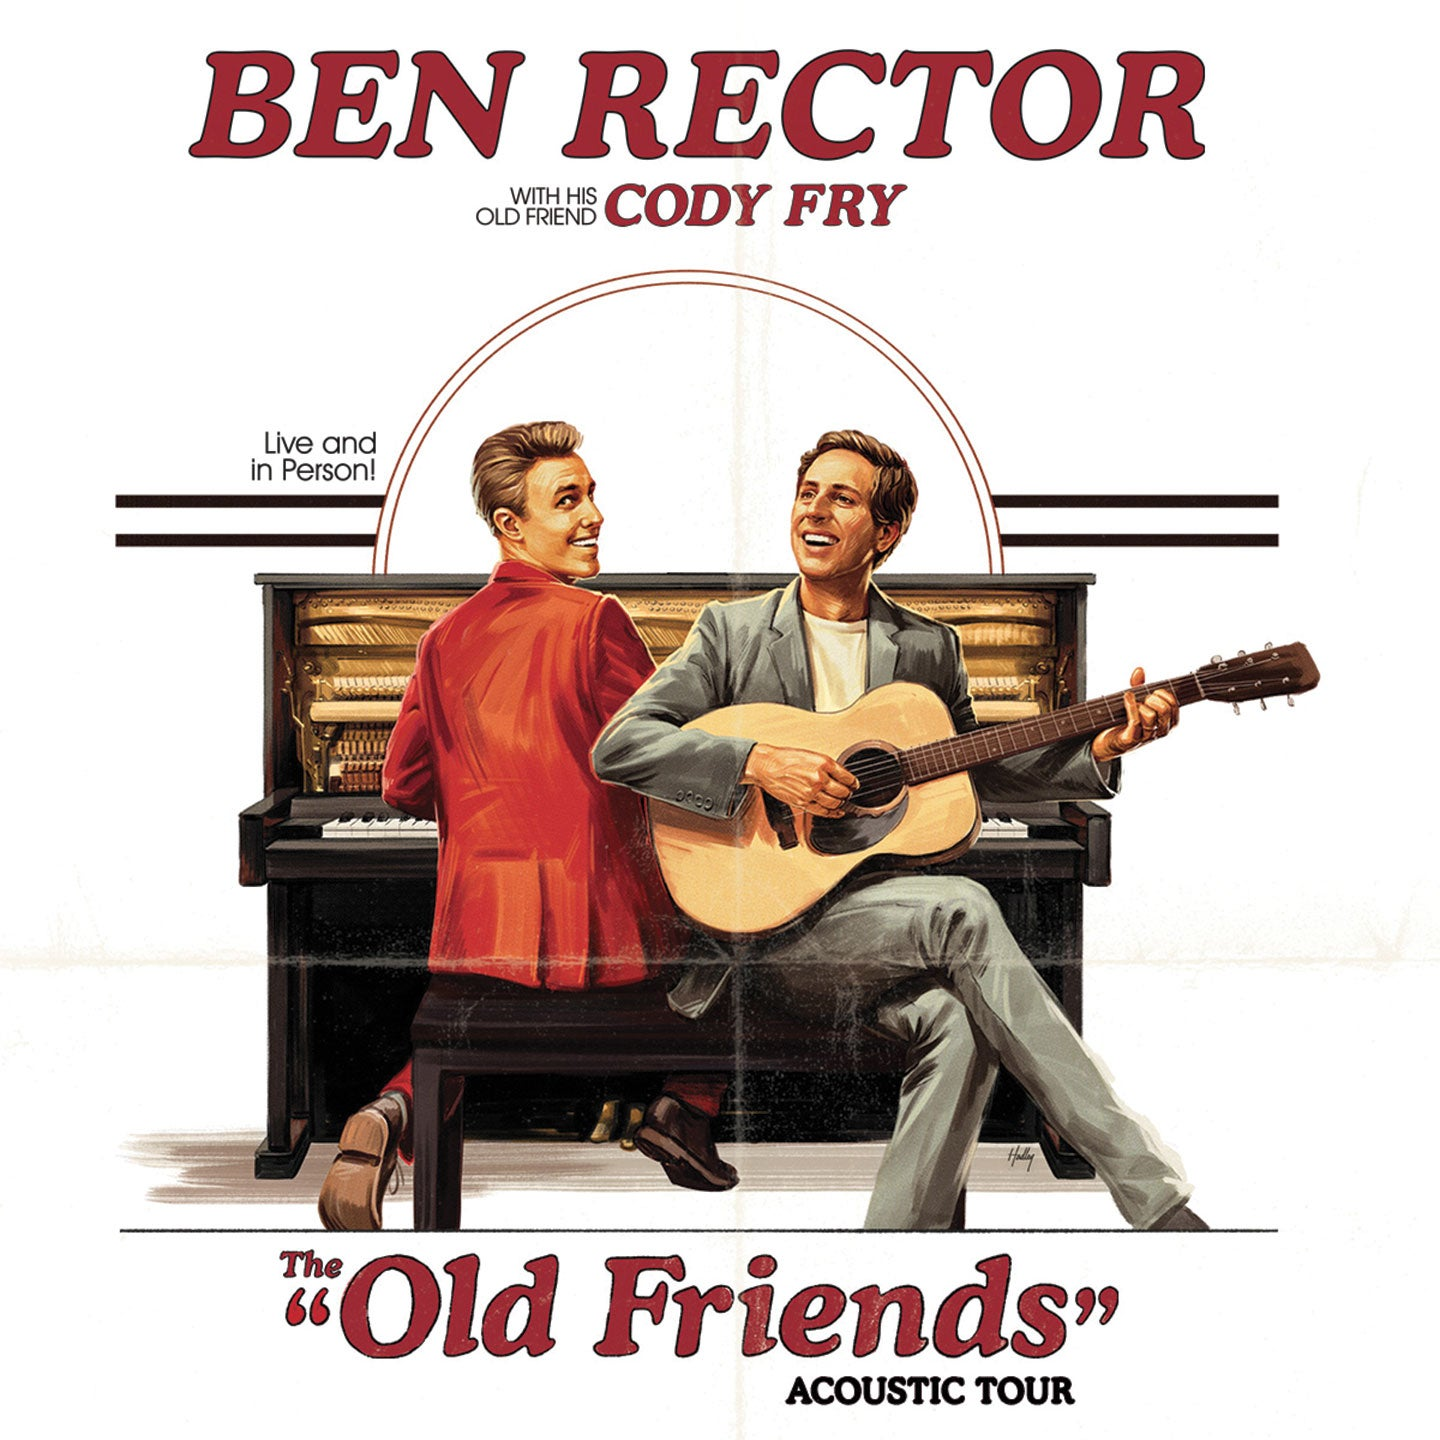 Ben Rector: The Old Friends Acoustic Tour with special guest Cody Fry